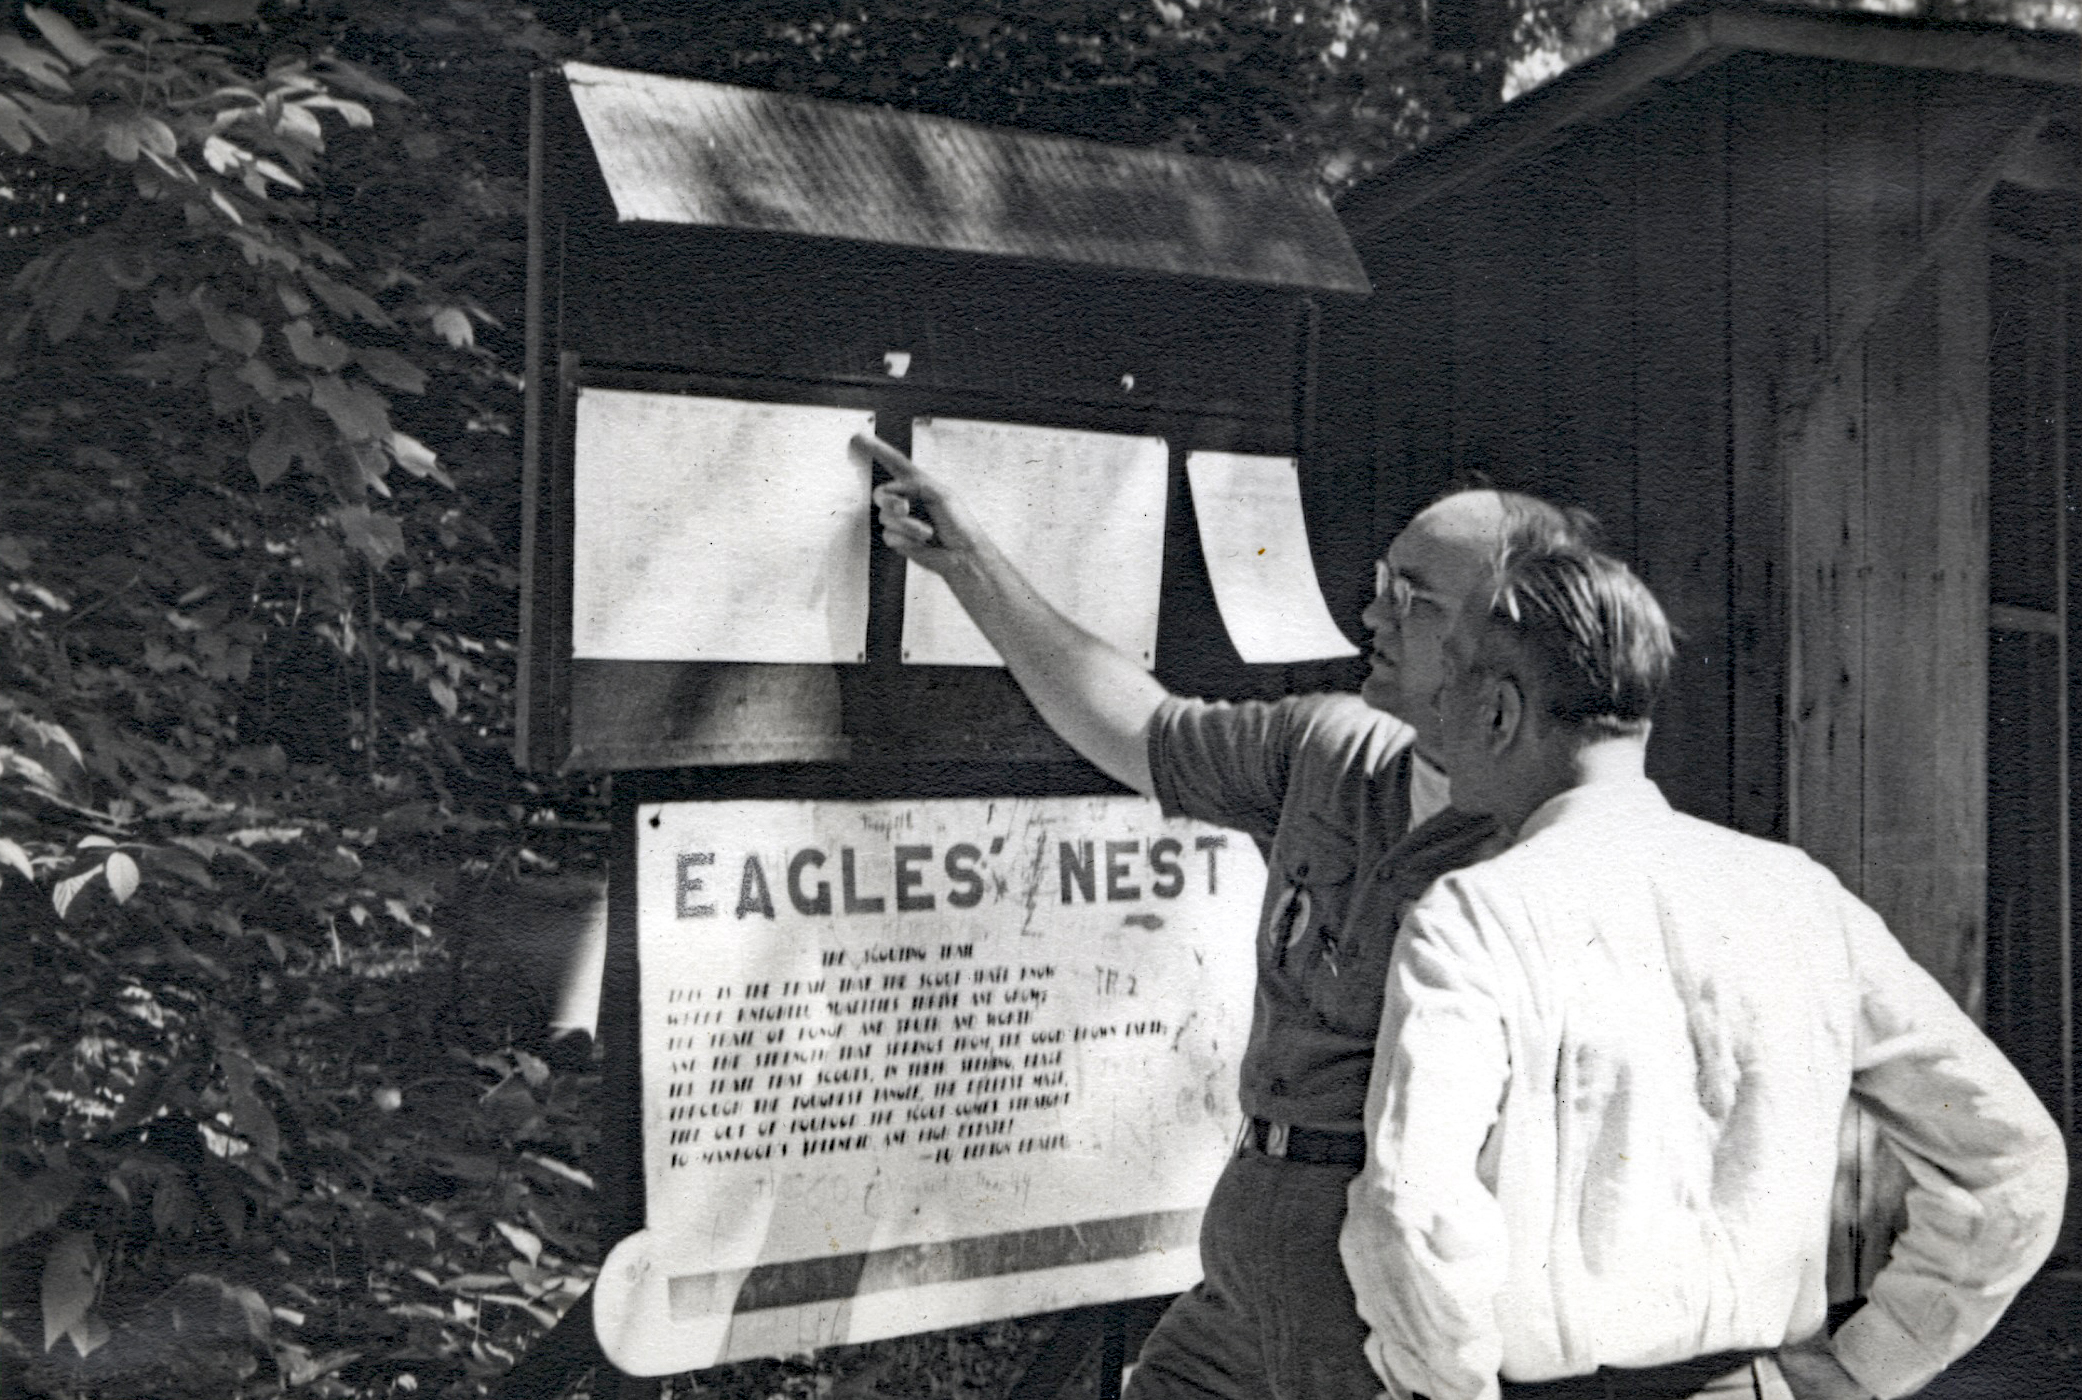 Eagle's Nest campsite sign in 1948